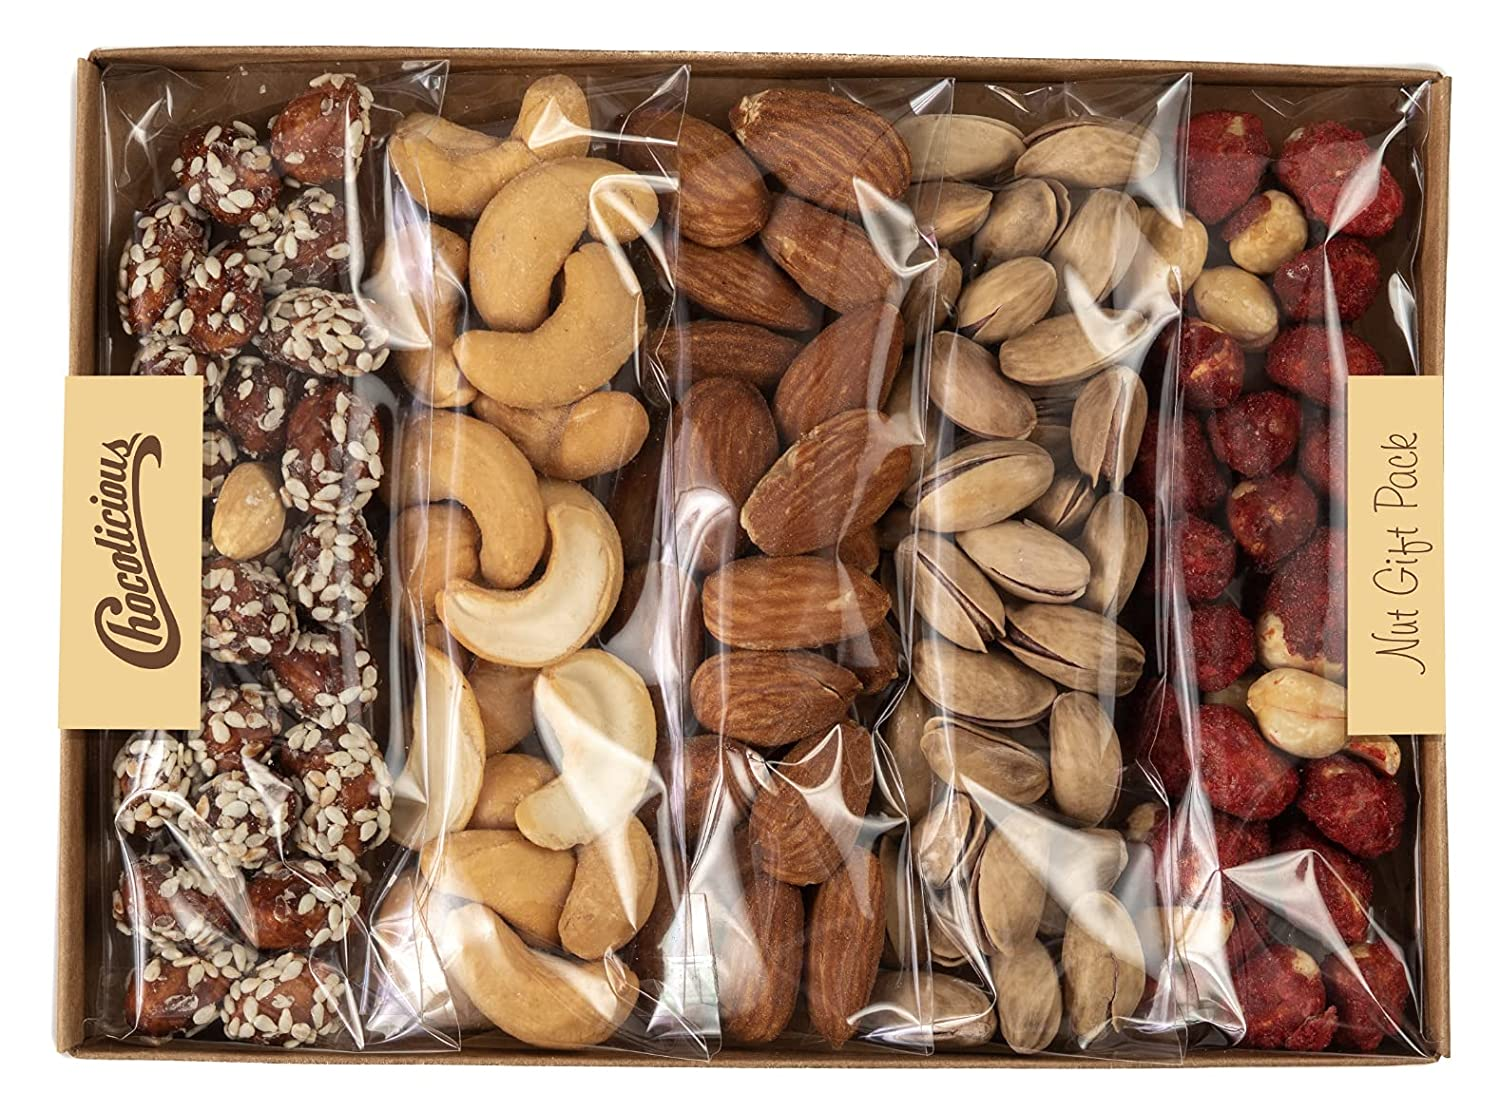 Nuts Holiday Gift Basket, 5 Variety Personal Nut Tray, Gourmet Gifts, Healthy Food Tray Gifting Idea, Snack Box for Men and Women.